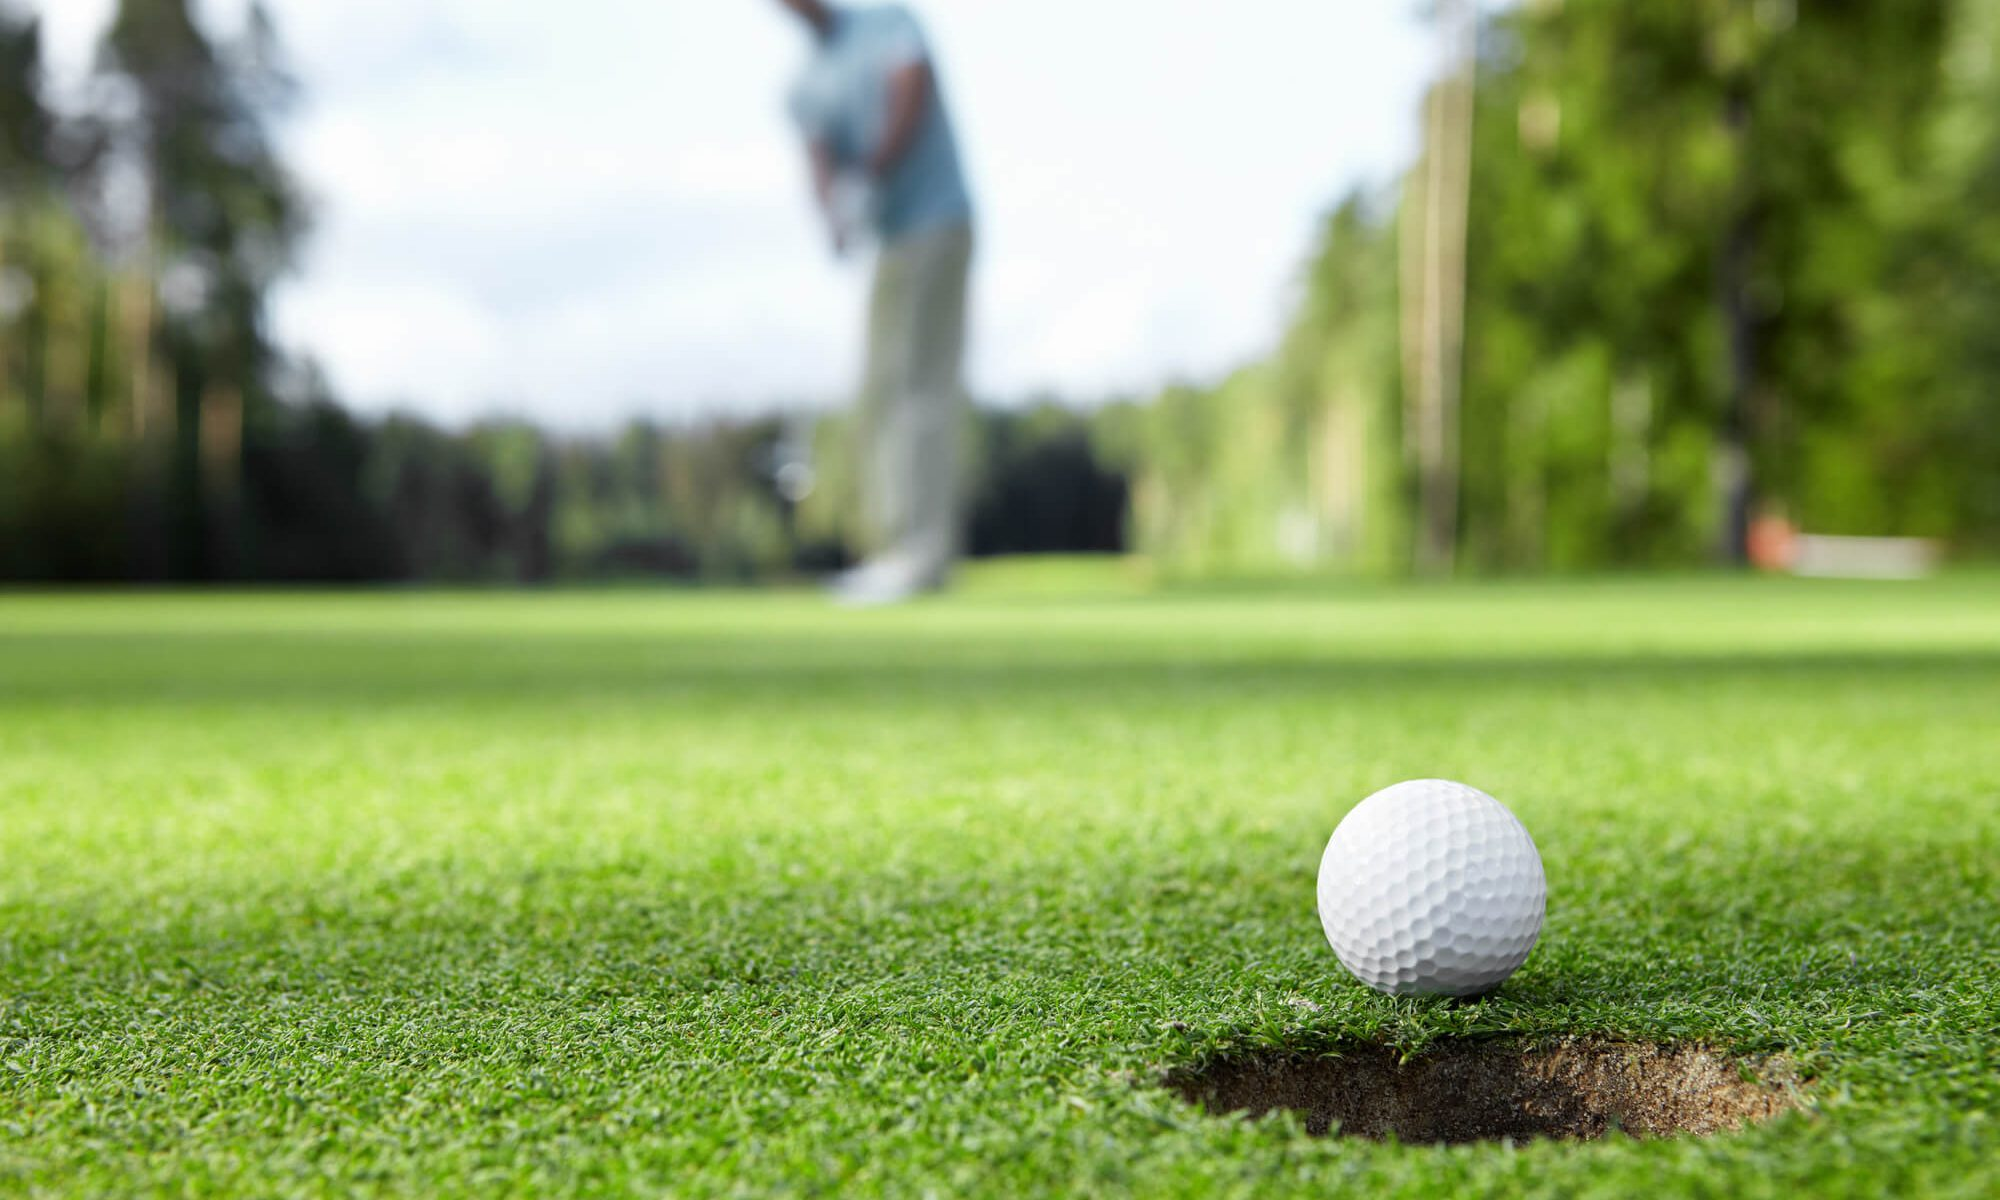 tee time scheduling software